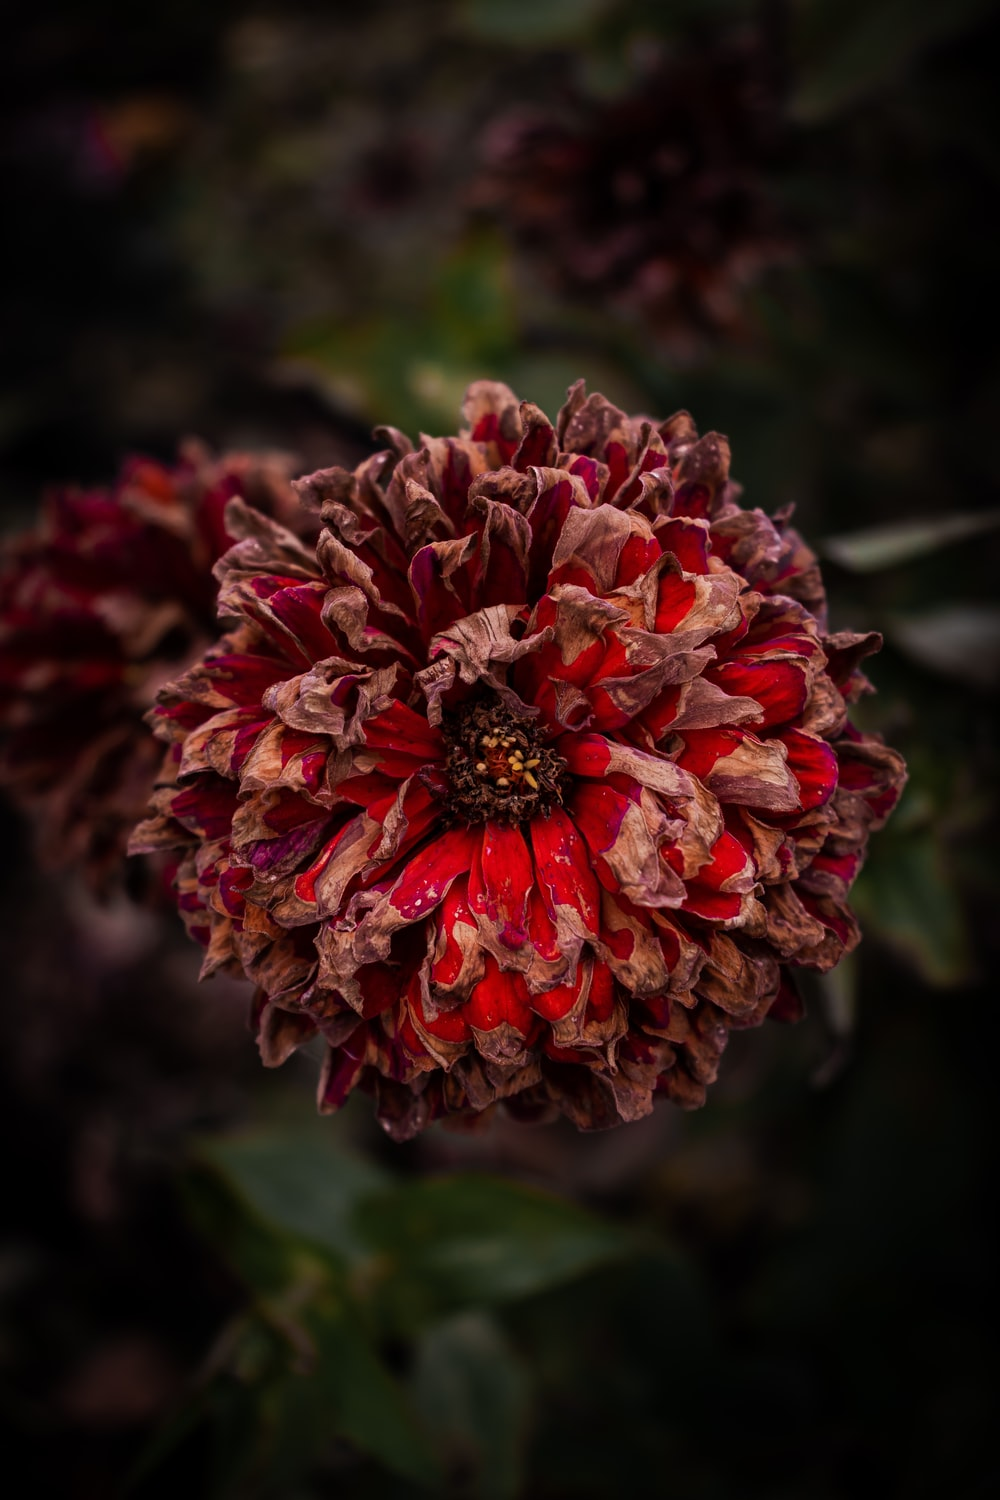 red and brown cluster flower during daytime